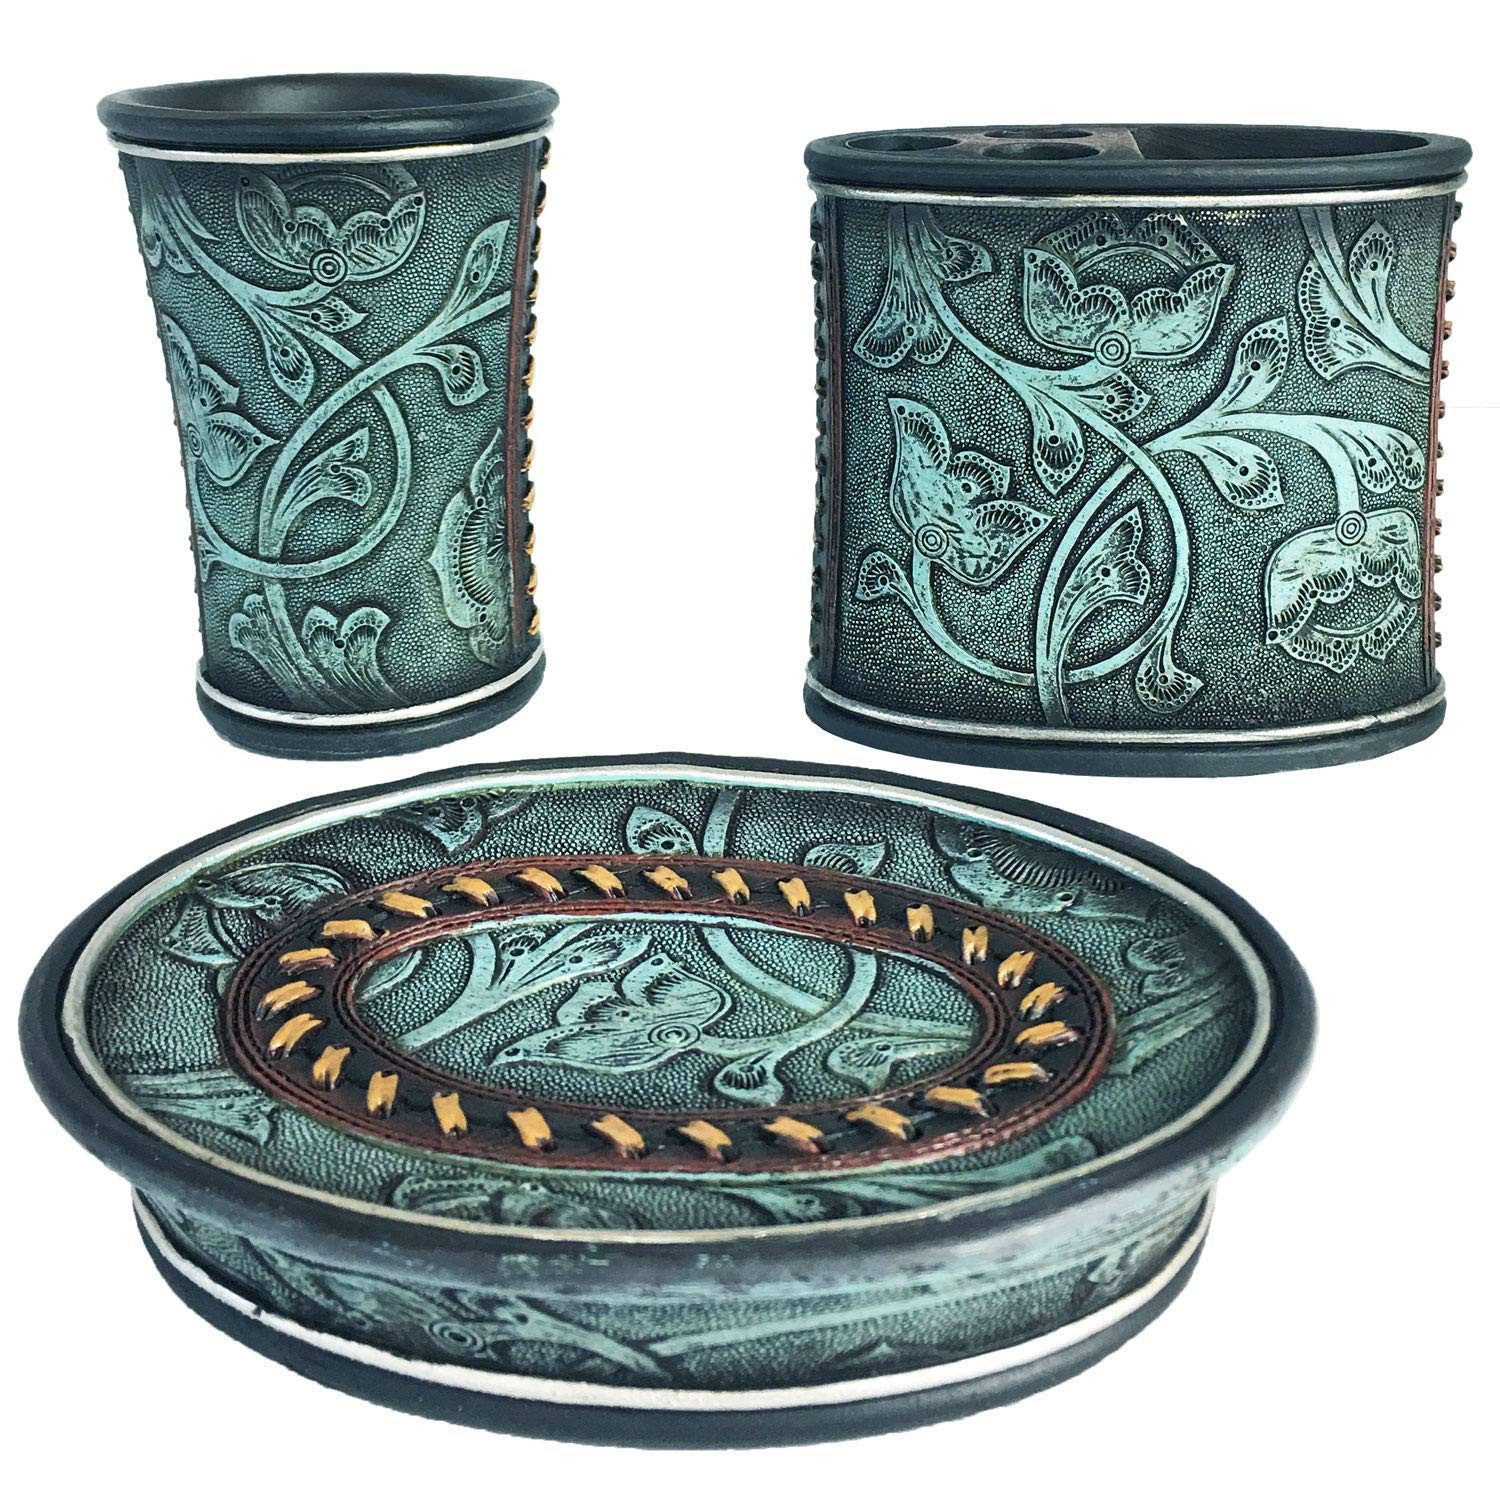 Lifestyle Banquet Teal Bathroom Accessories Decor Set | Toothbrush and Toothpaste Holder with Bathroom Soap Dish | Rustic Bathroom Decor Kit with Floral Pattern